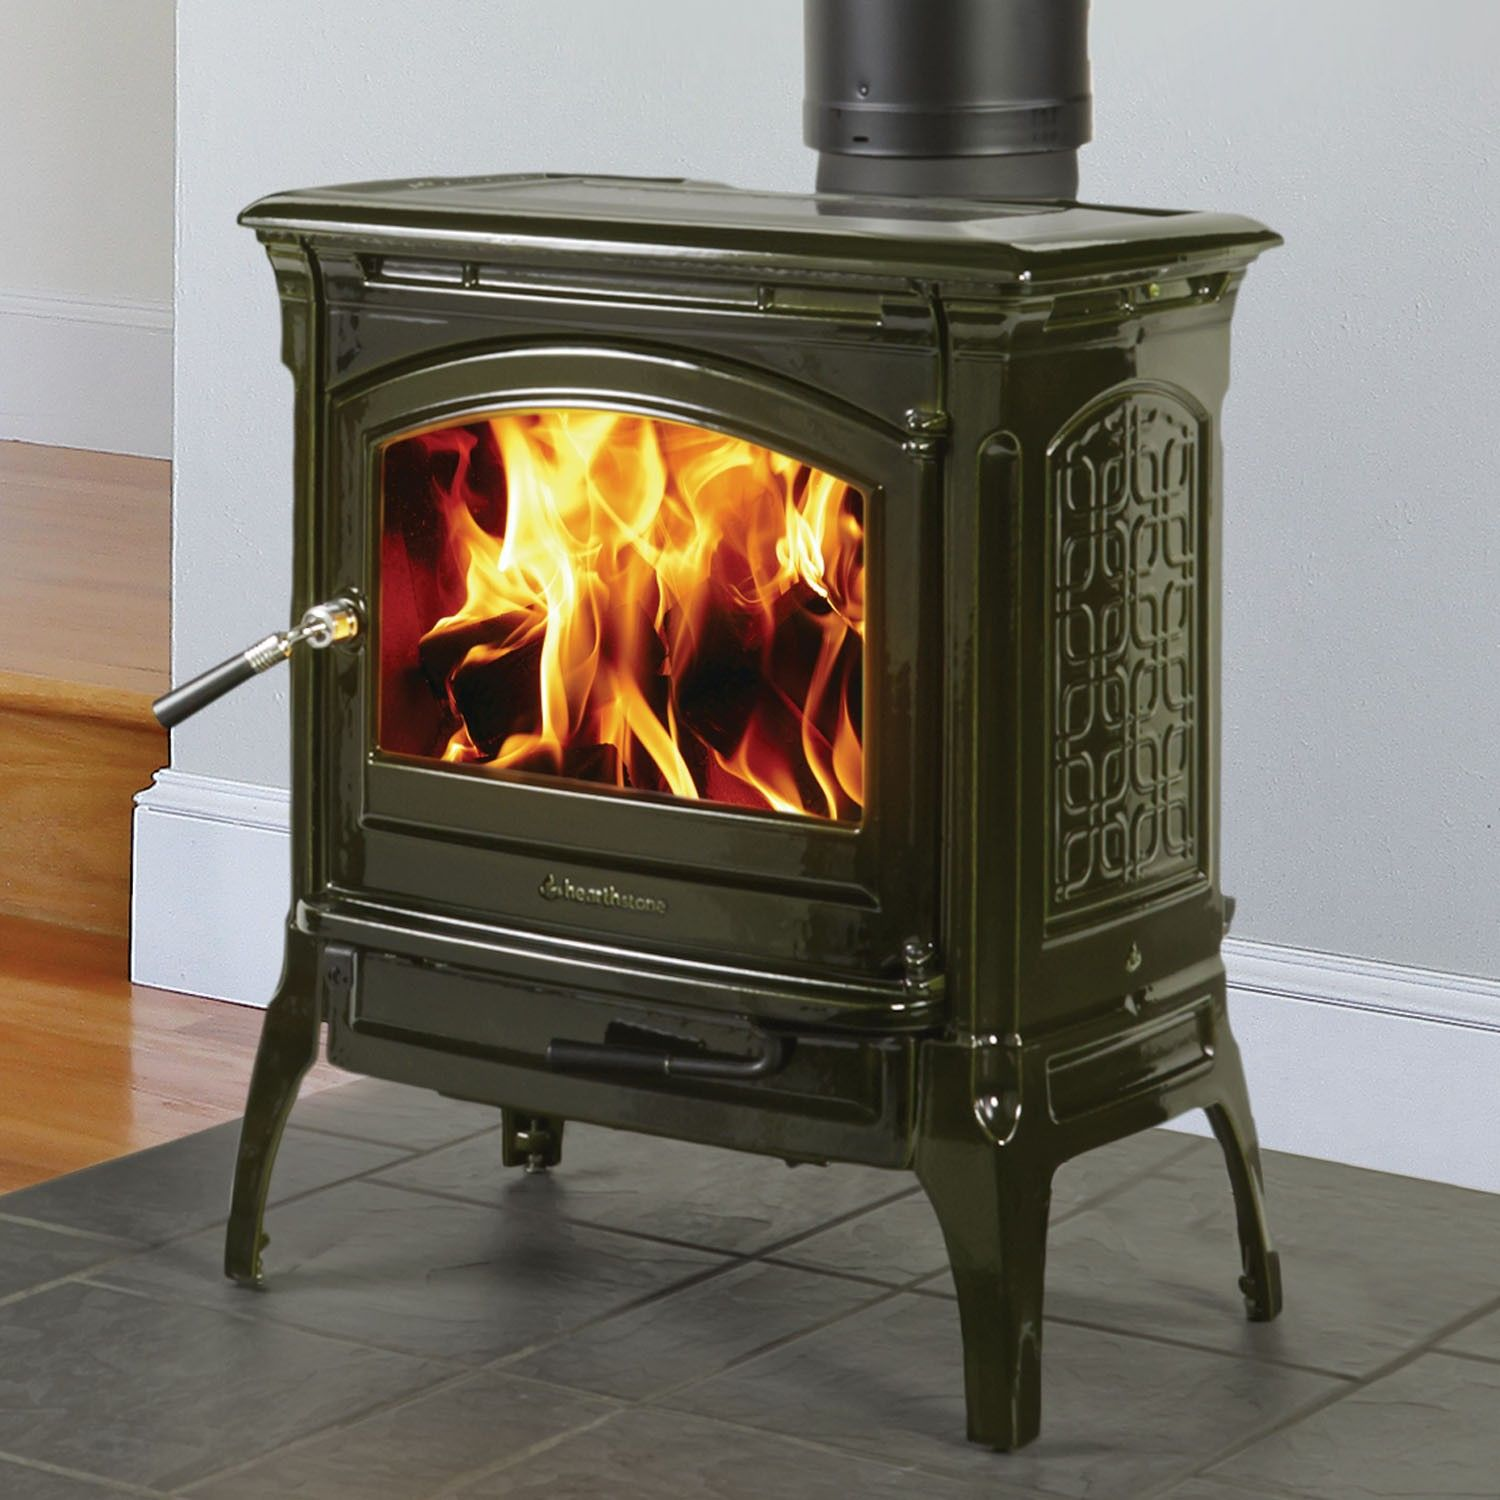 craftsbury 8391 wood stove with with basil majolica enamel finish